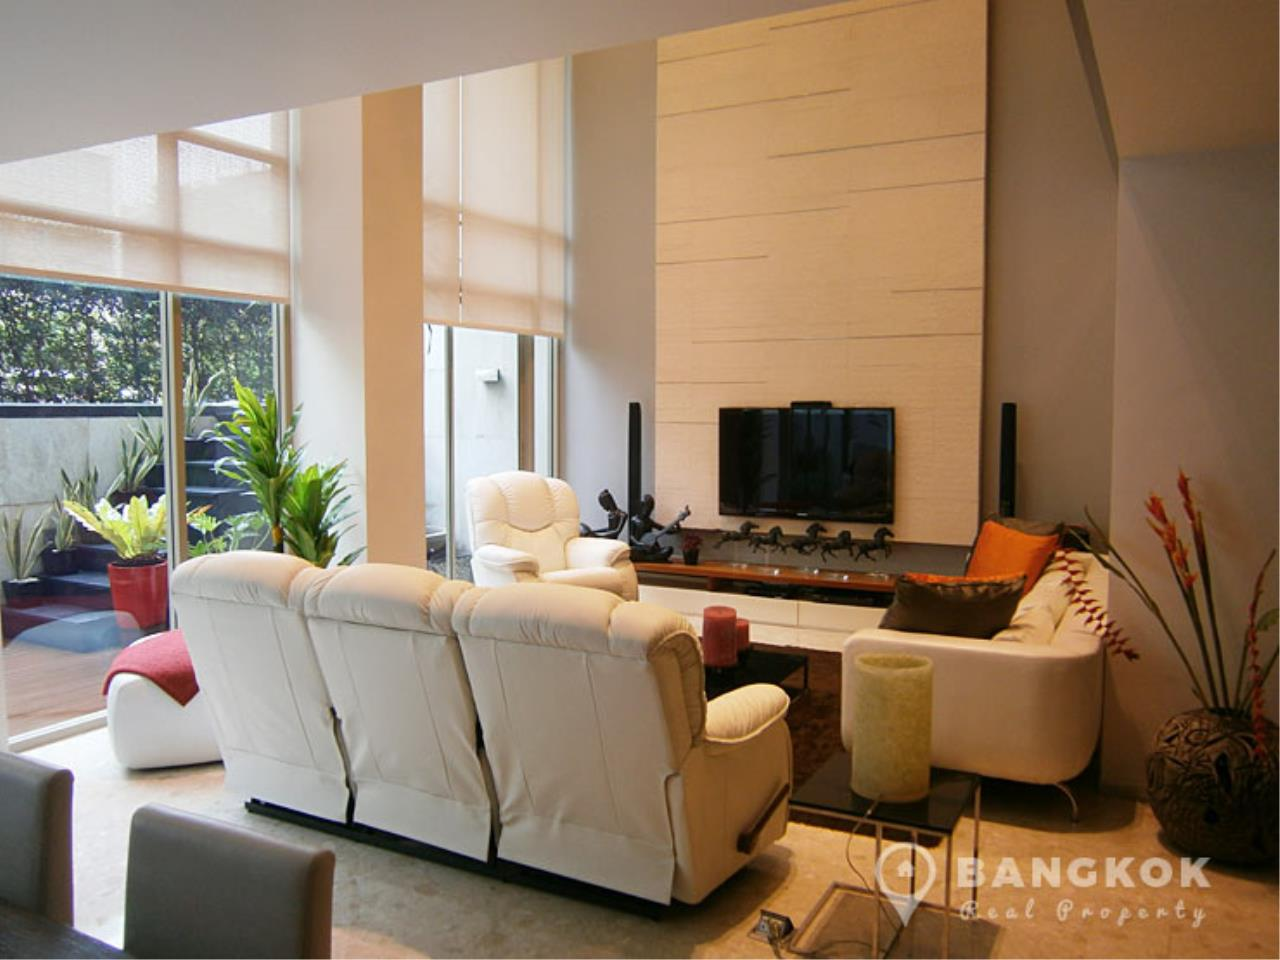 Bangkok Real Property Agency's Ficus Lane | A Fabulous Spacious 3 Bed 4 Bath Duplex near BTS 41